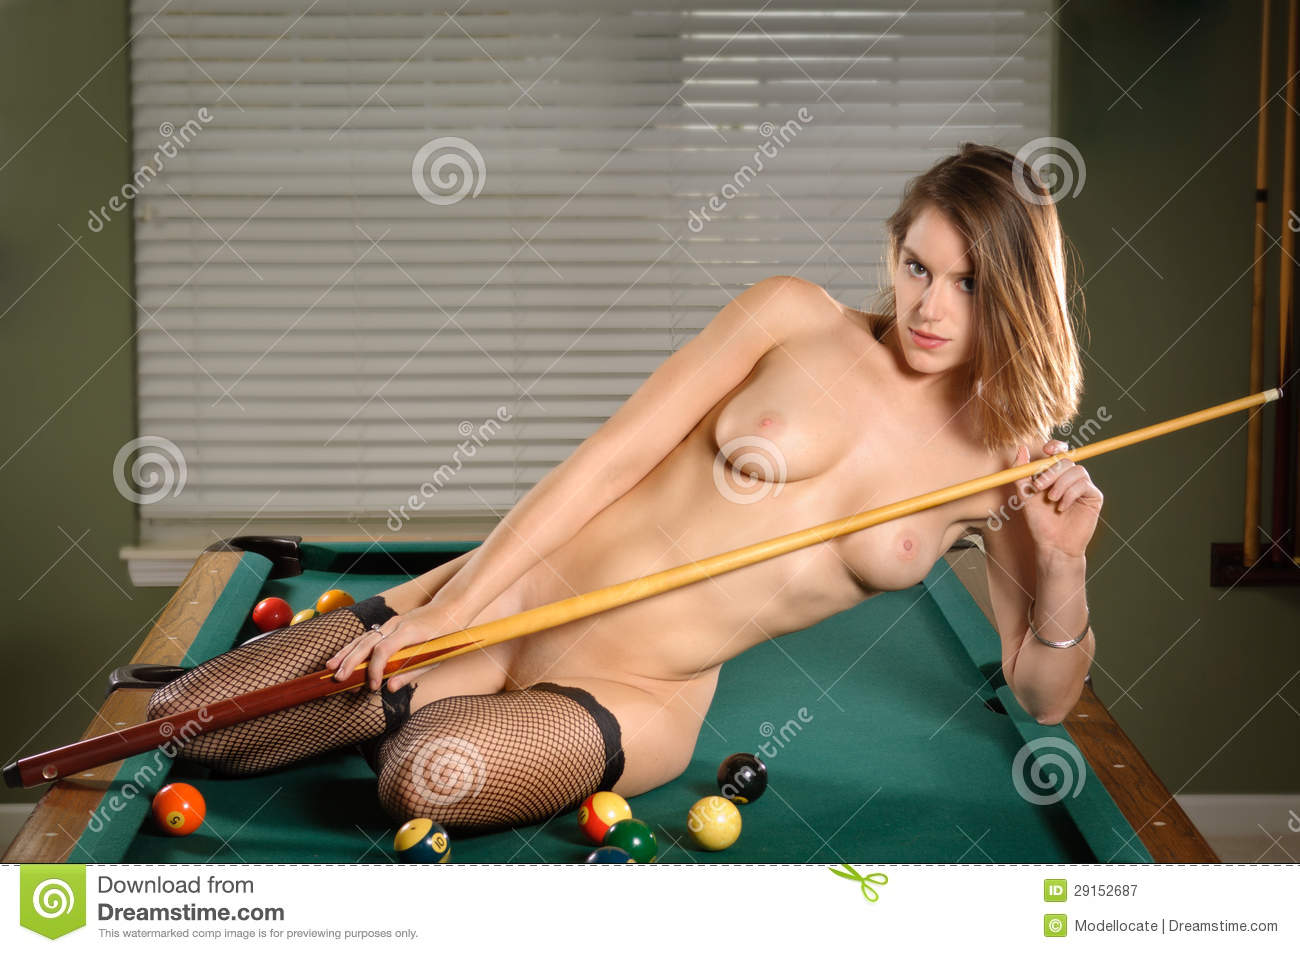 nude woman on pool table video